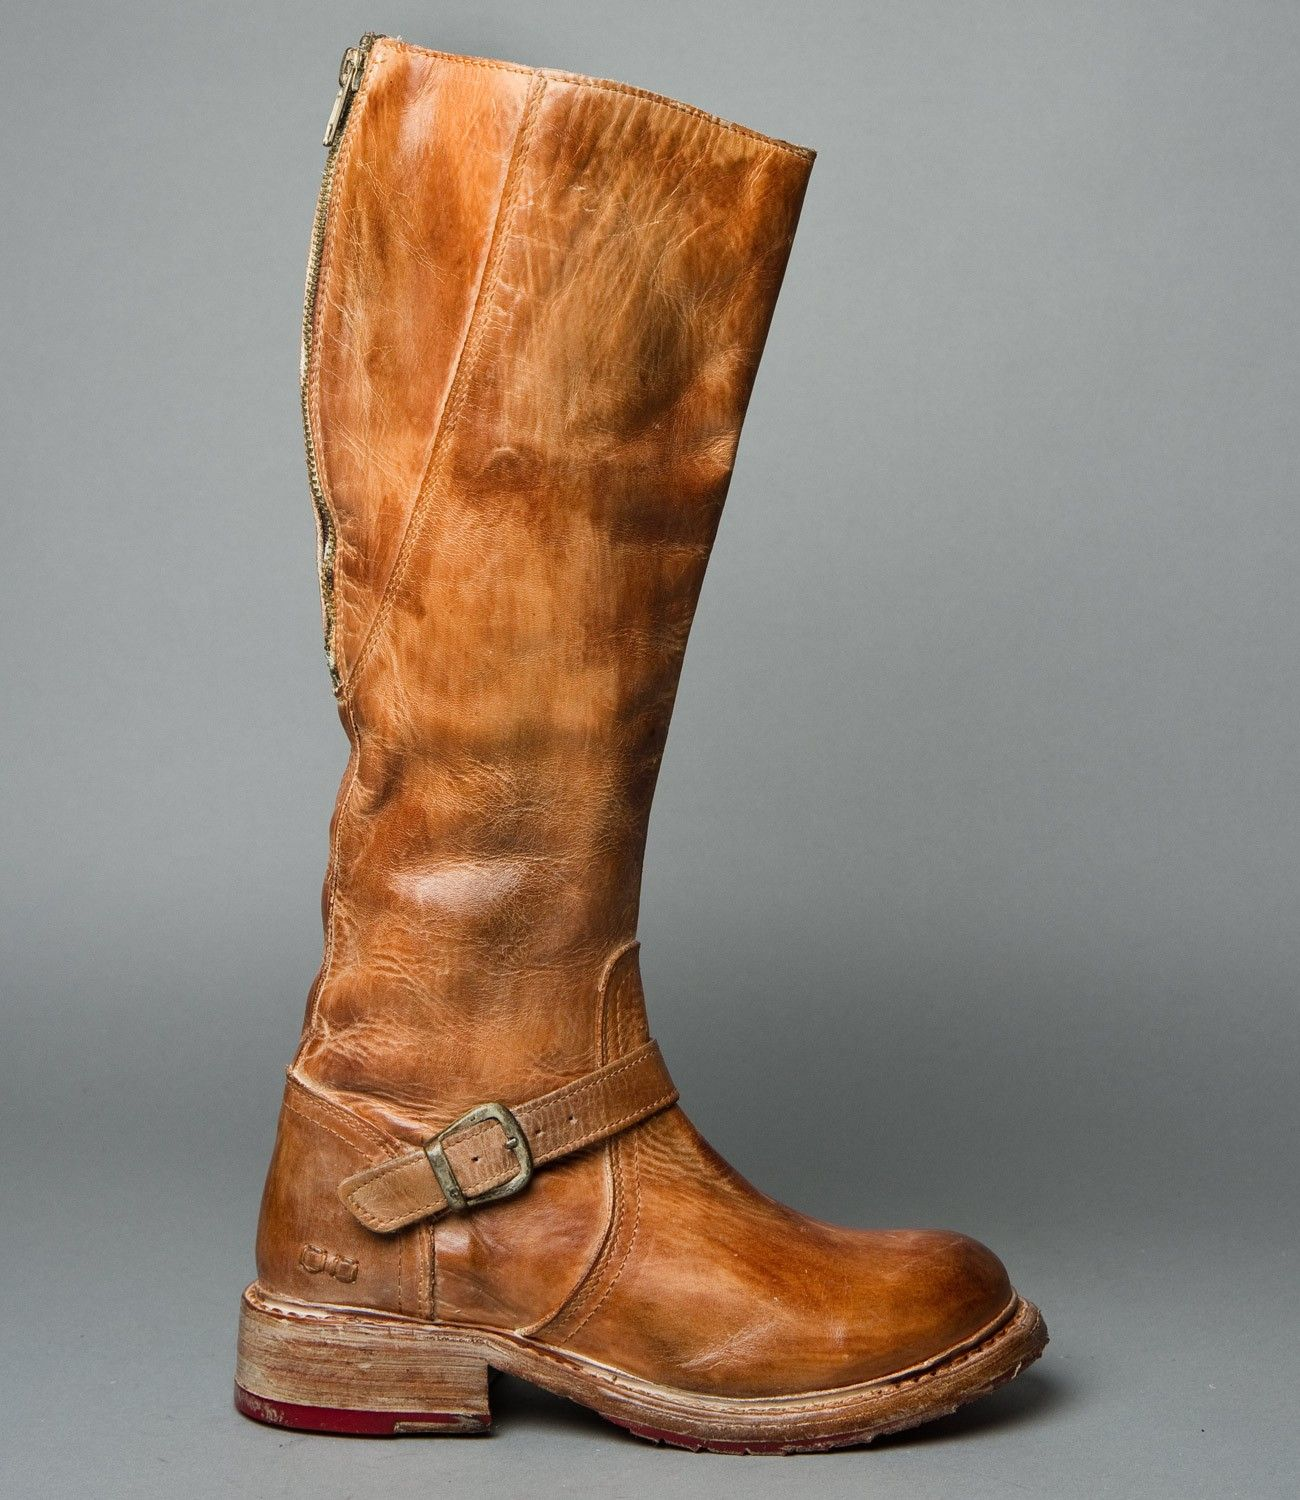 Gallery Image 3 Zoom Vintage Boots Boots Womens Riding Boots